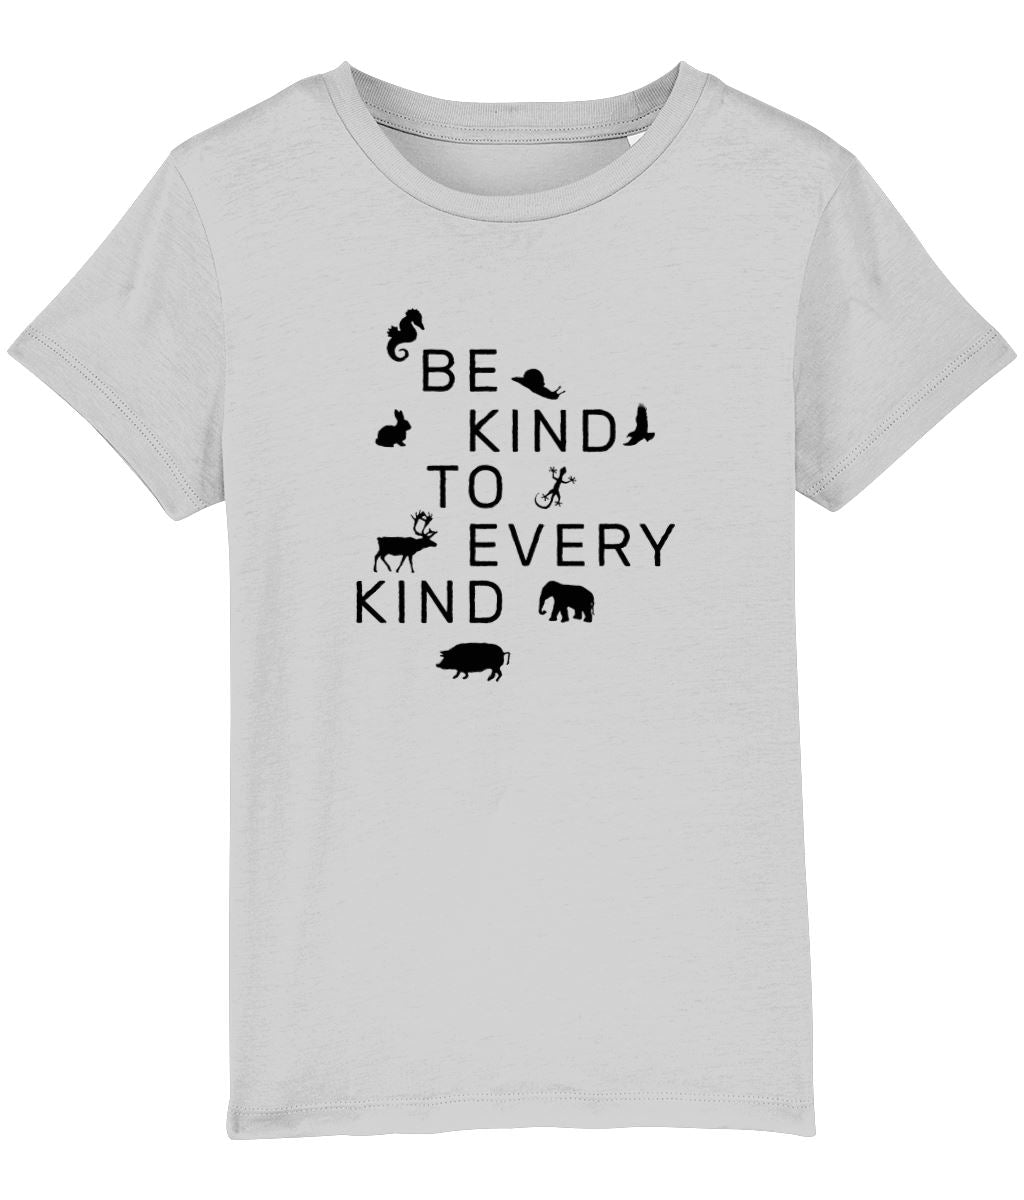 """Be Kind To Every Kind"" Children's Vegan T-Shirt (Unisex) Clothing Vegan Original Heather Grey 3-4 years"